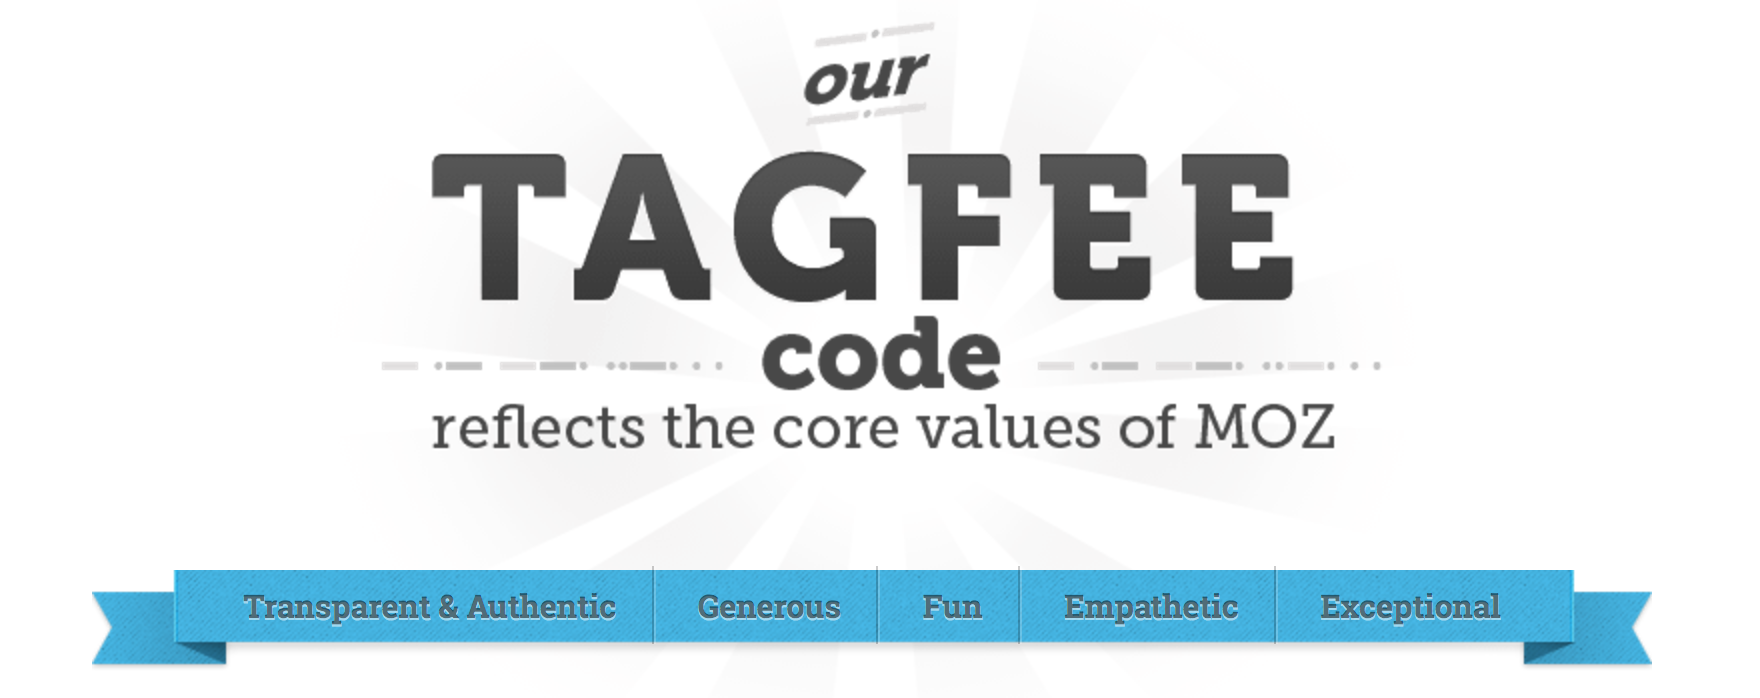 Moz's TAGFEE code begins with Transparency as a core value.